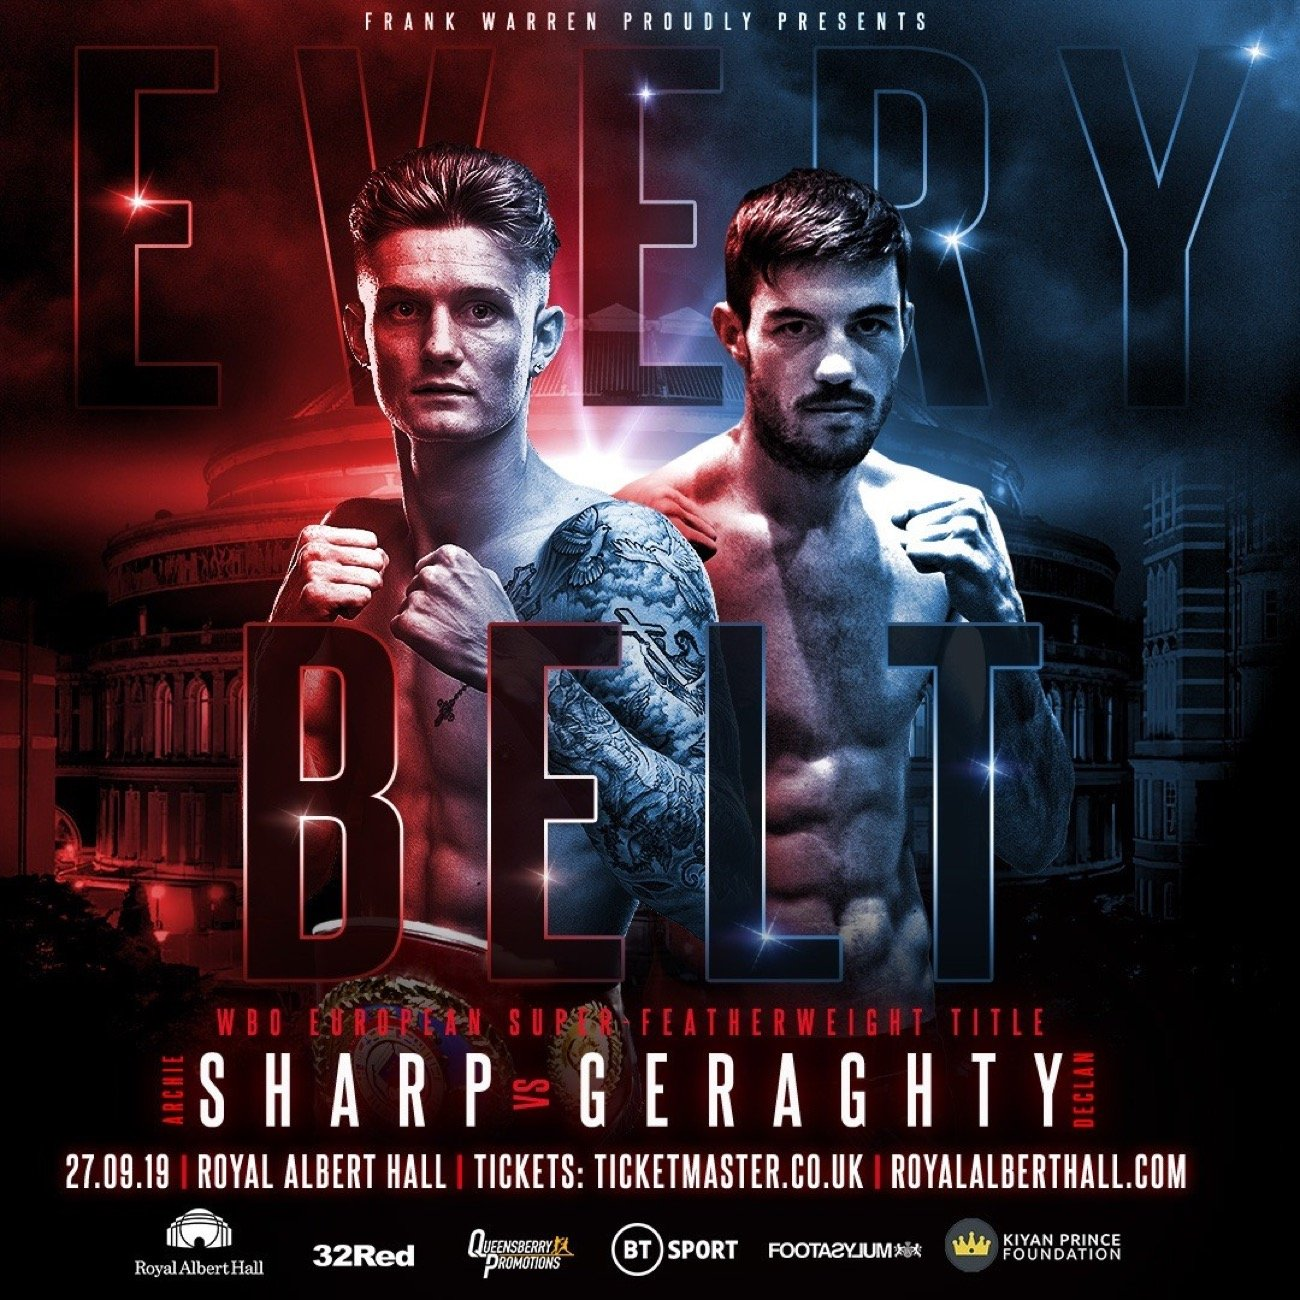 Archie Sharp - ARCHIE SHARP will defend his WBO European super featherweight title at the Royal Albert Hall on September 27 when he takes on the challenge from Declan 'Pretty Boy' Geraghty.